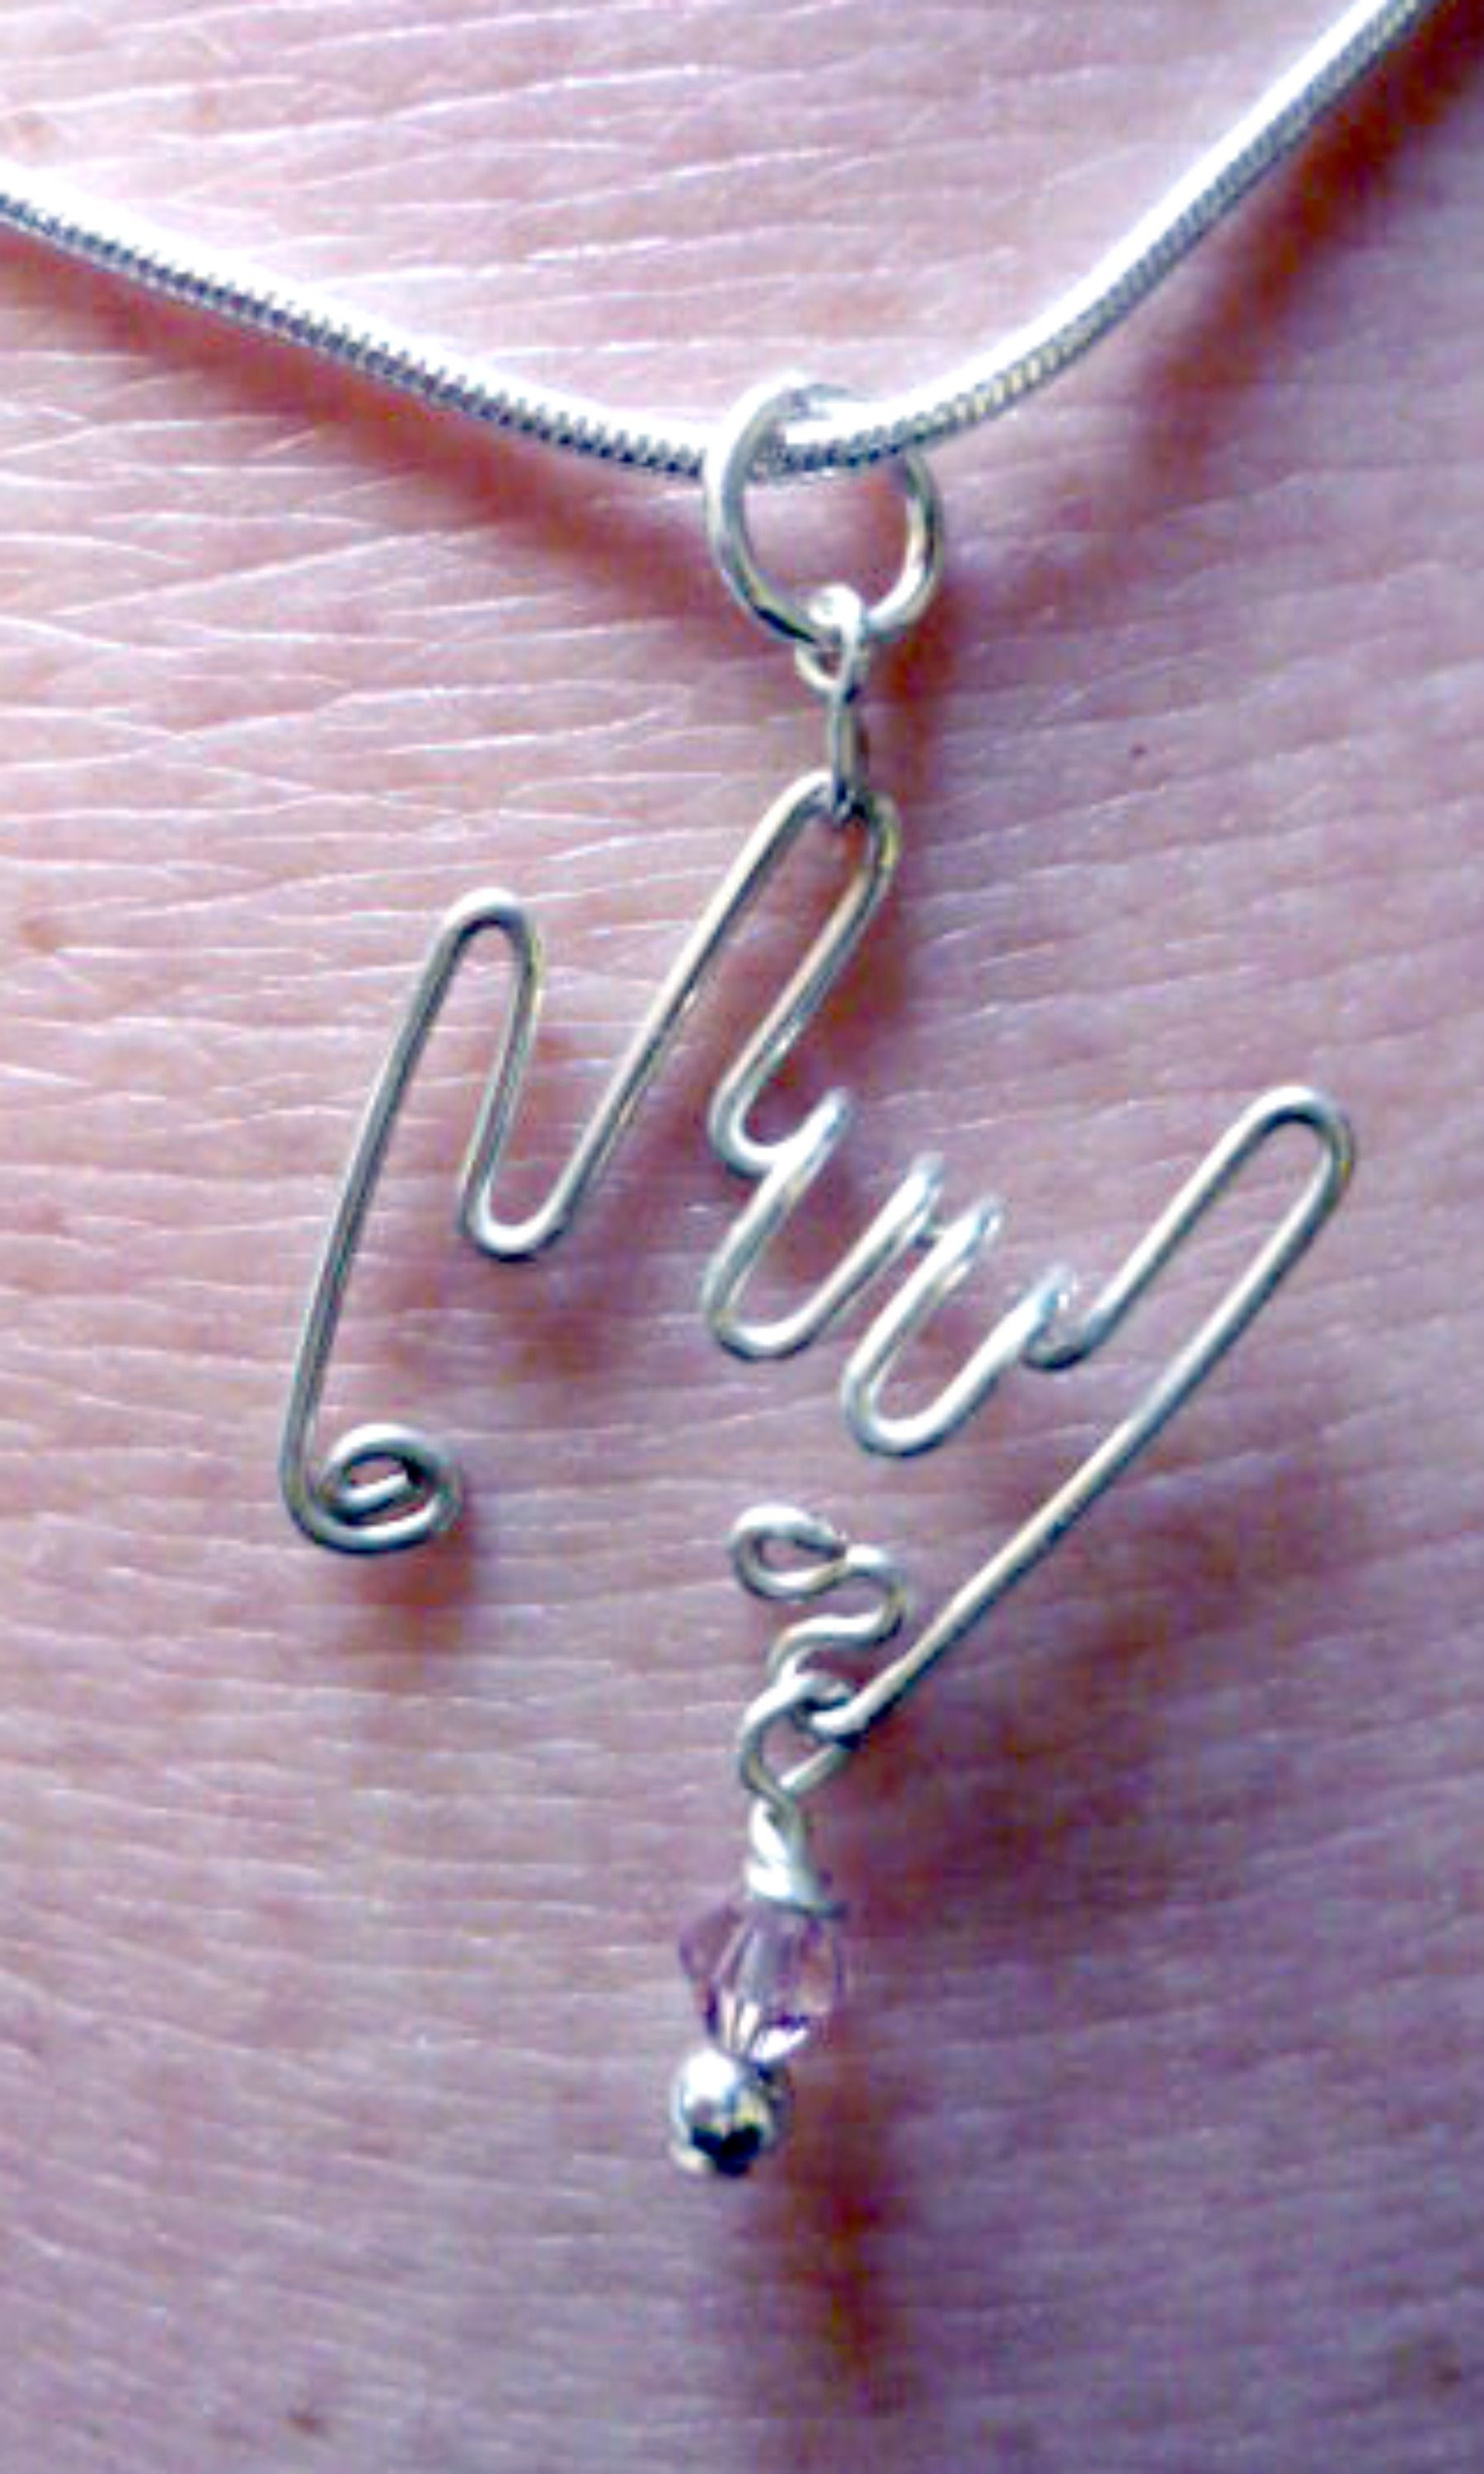 Deaf Awareness ASL Antique Silver Charm Necklace With Three Charms